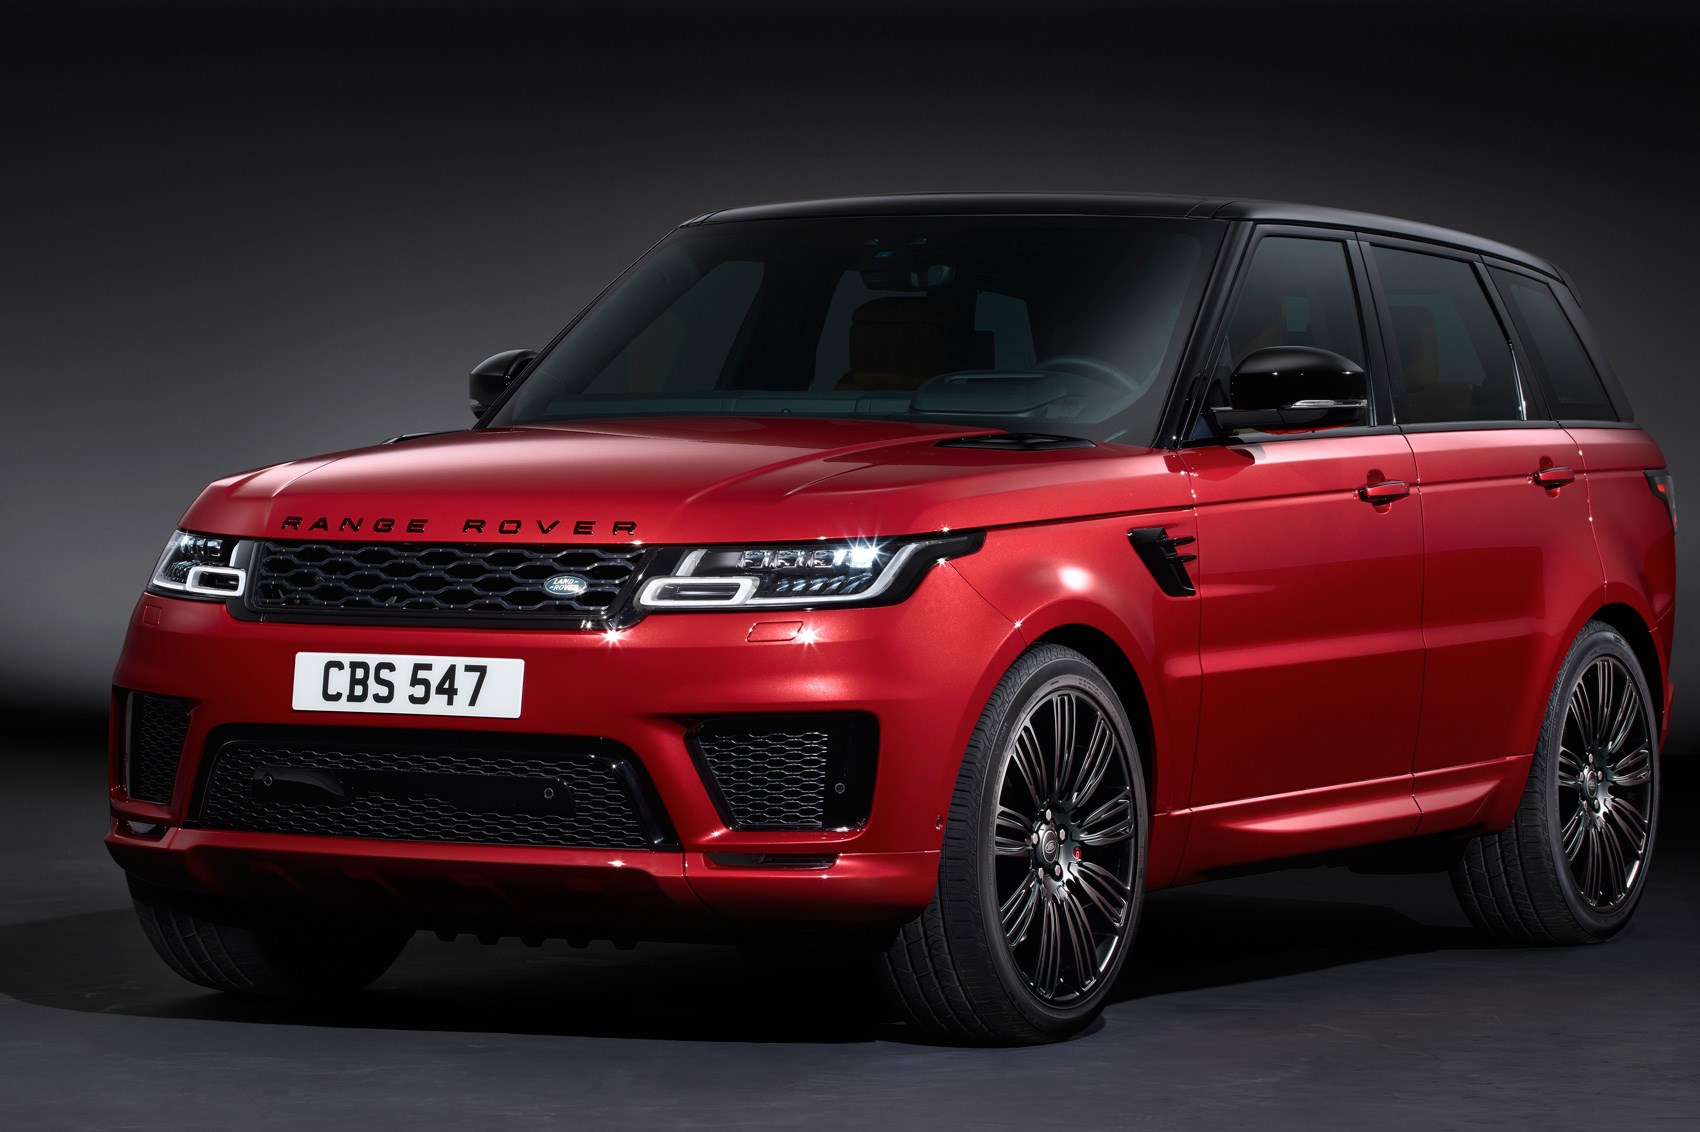 Range rover sport 2018 my and p400e phev by car magazine for The range wallpaper sale